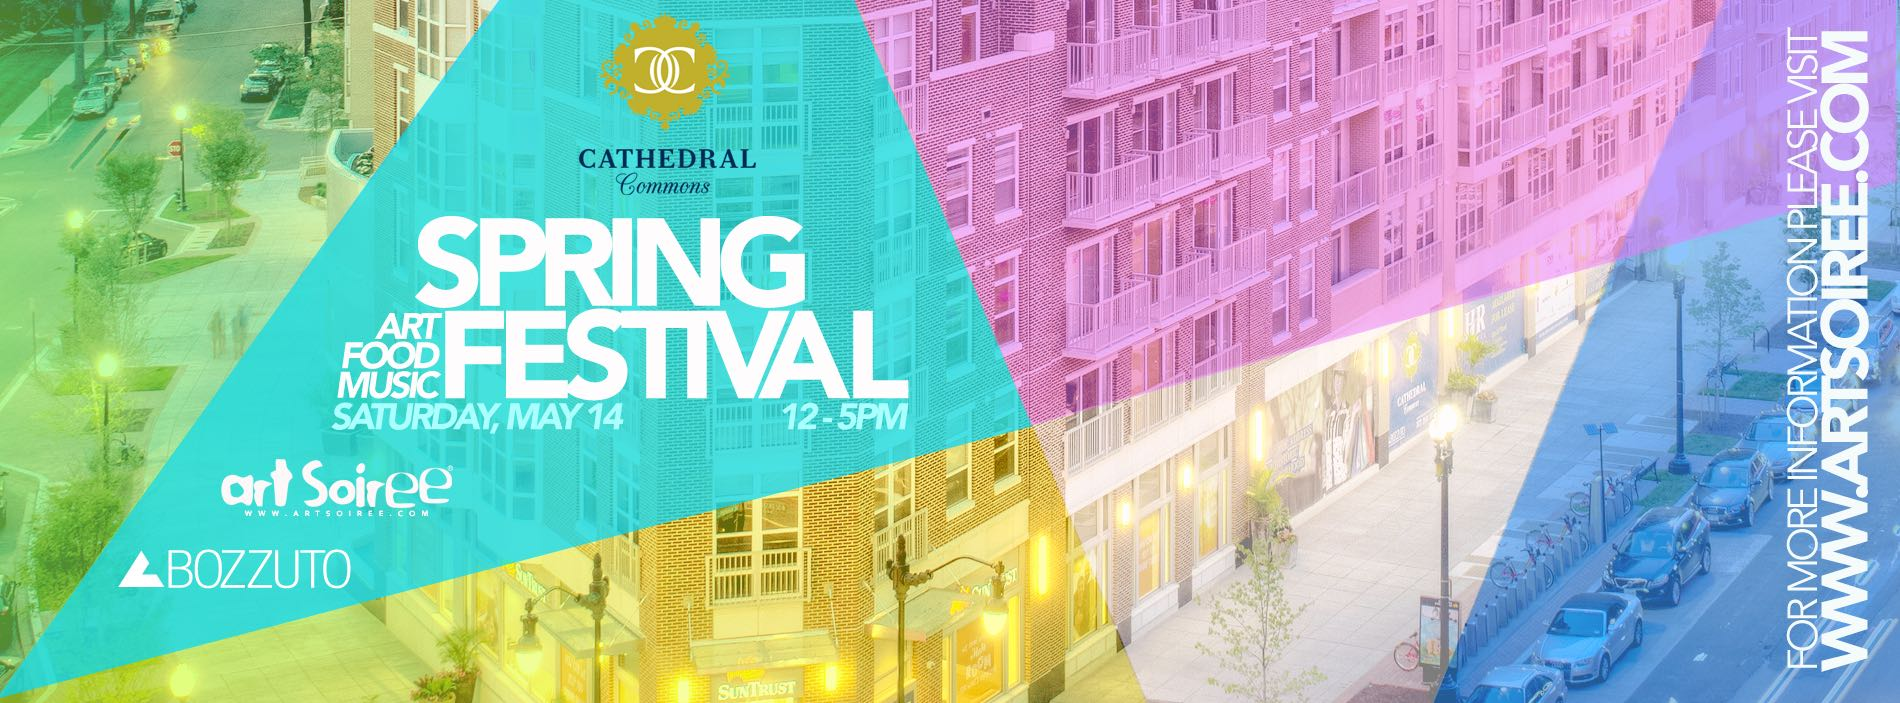 Spring Festival in Bloom at Cathedral Commons